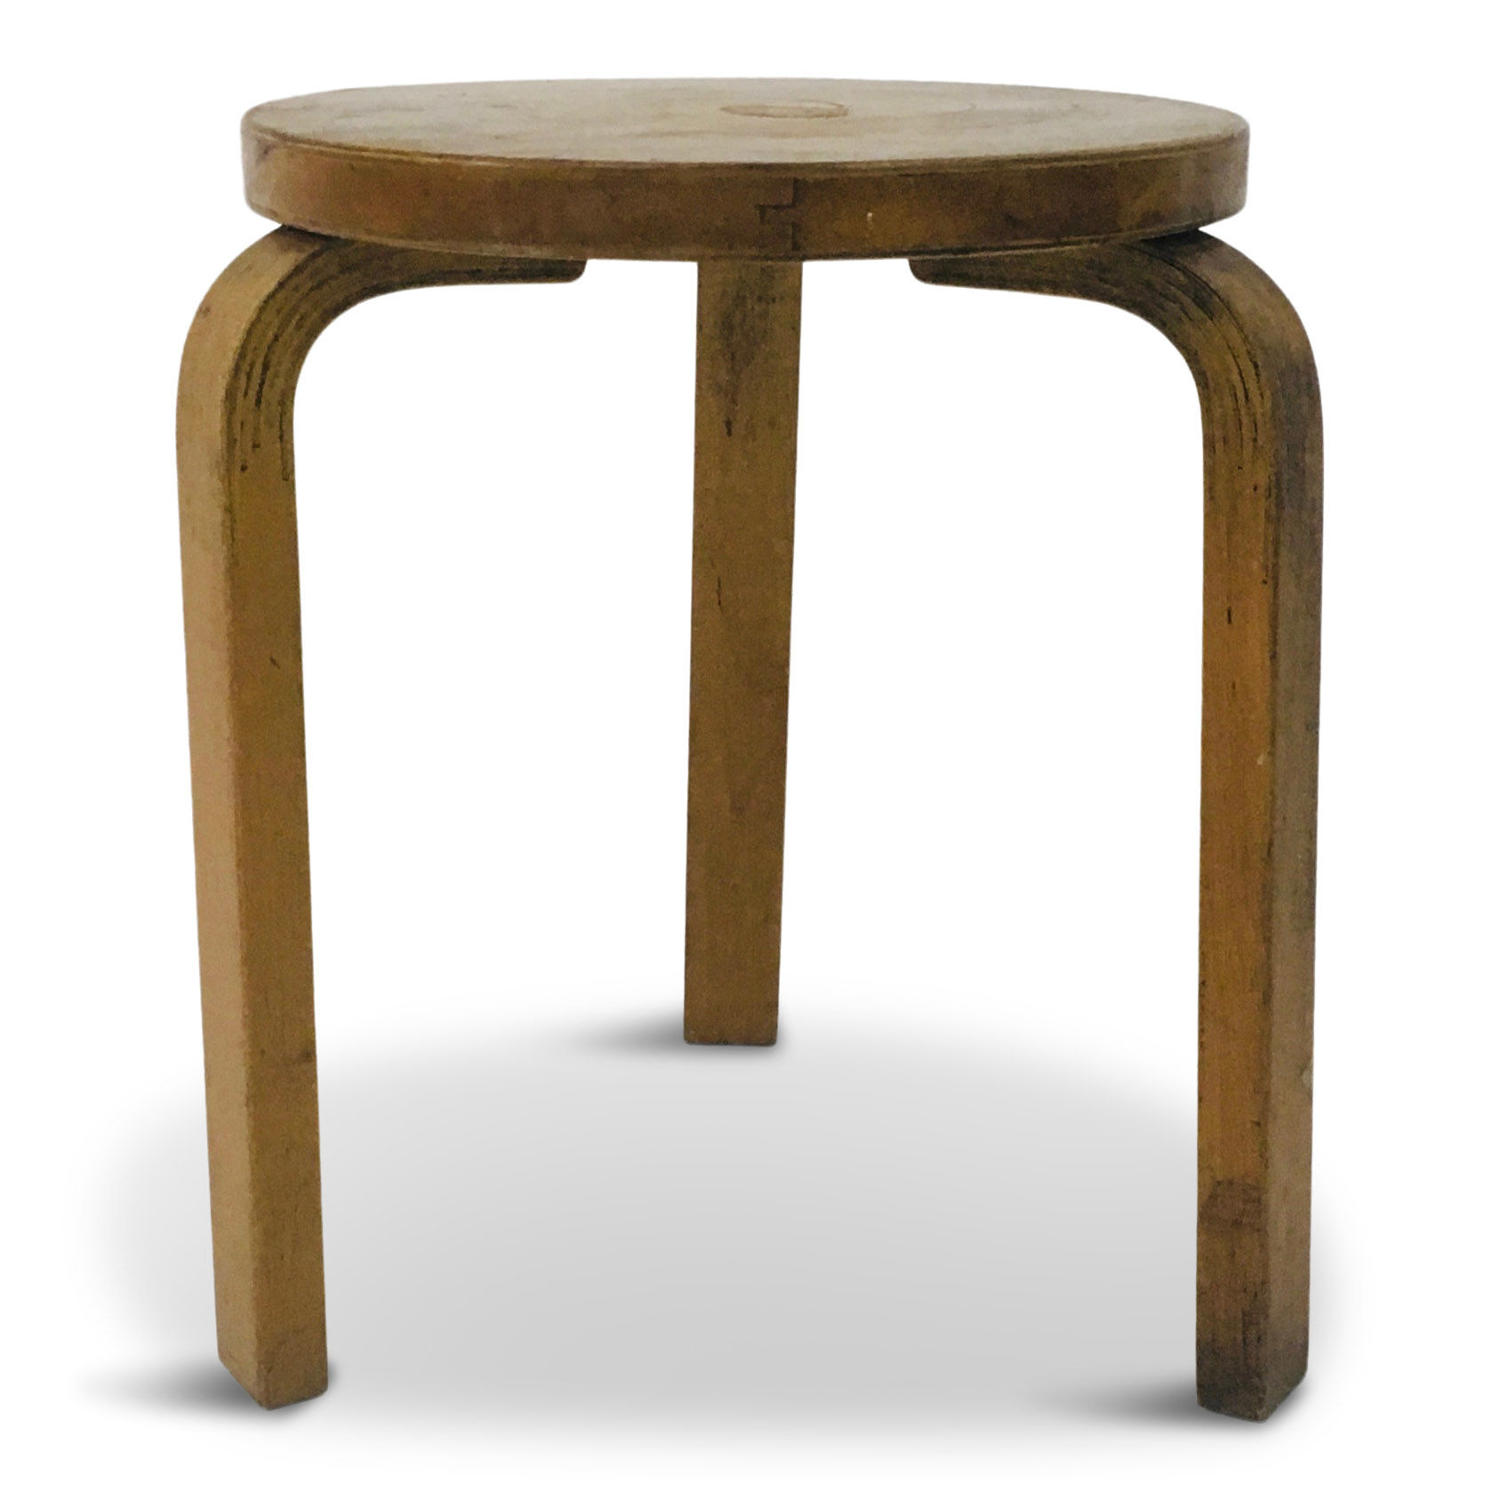 1930s Model 60 stool by Alvar Aalto for Finmar